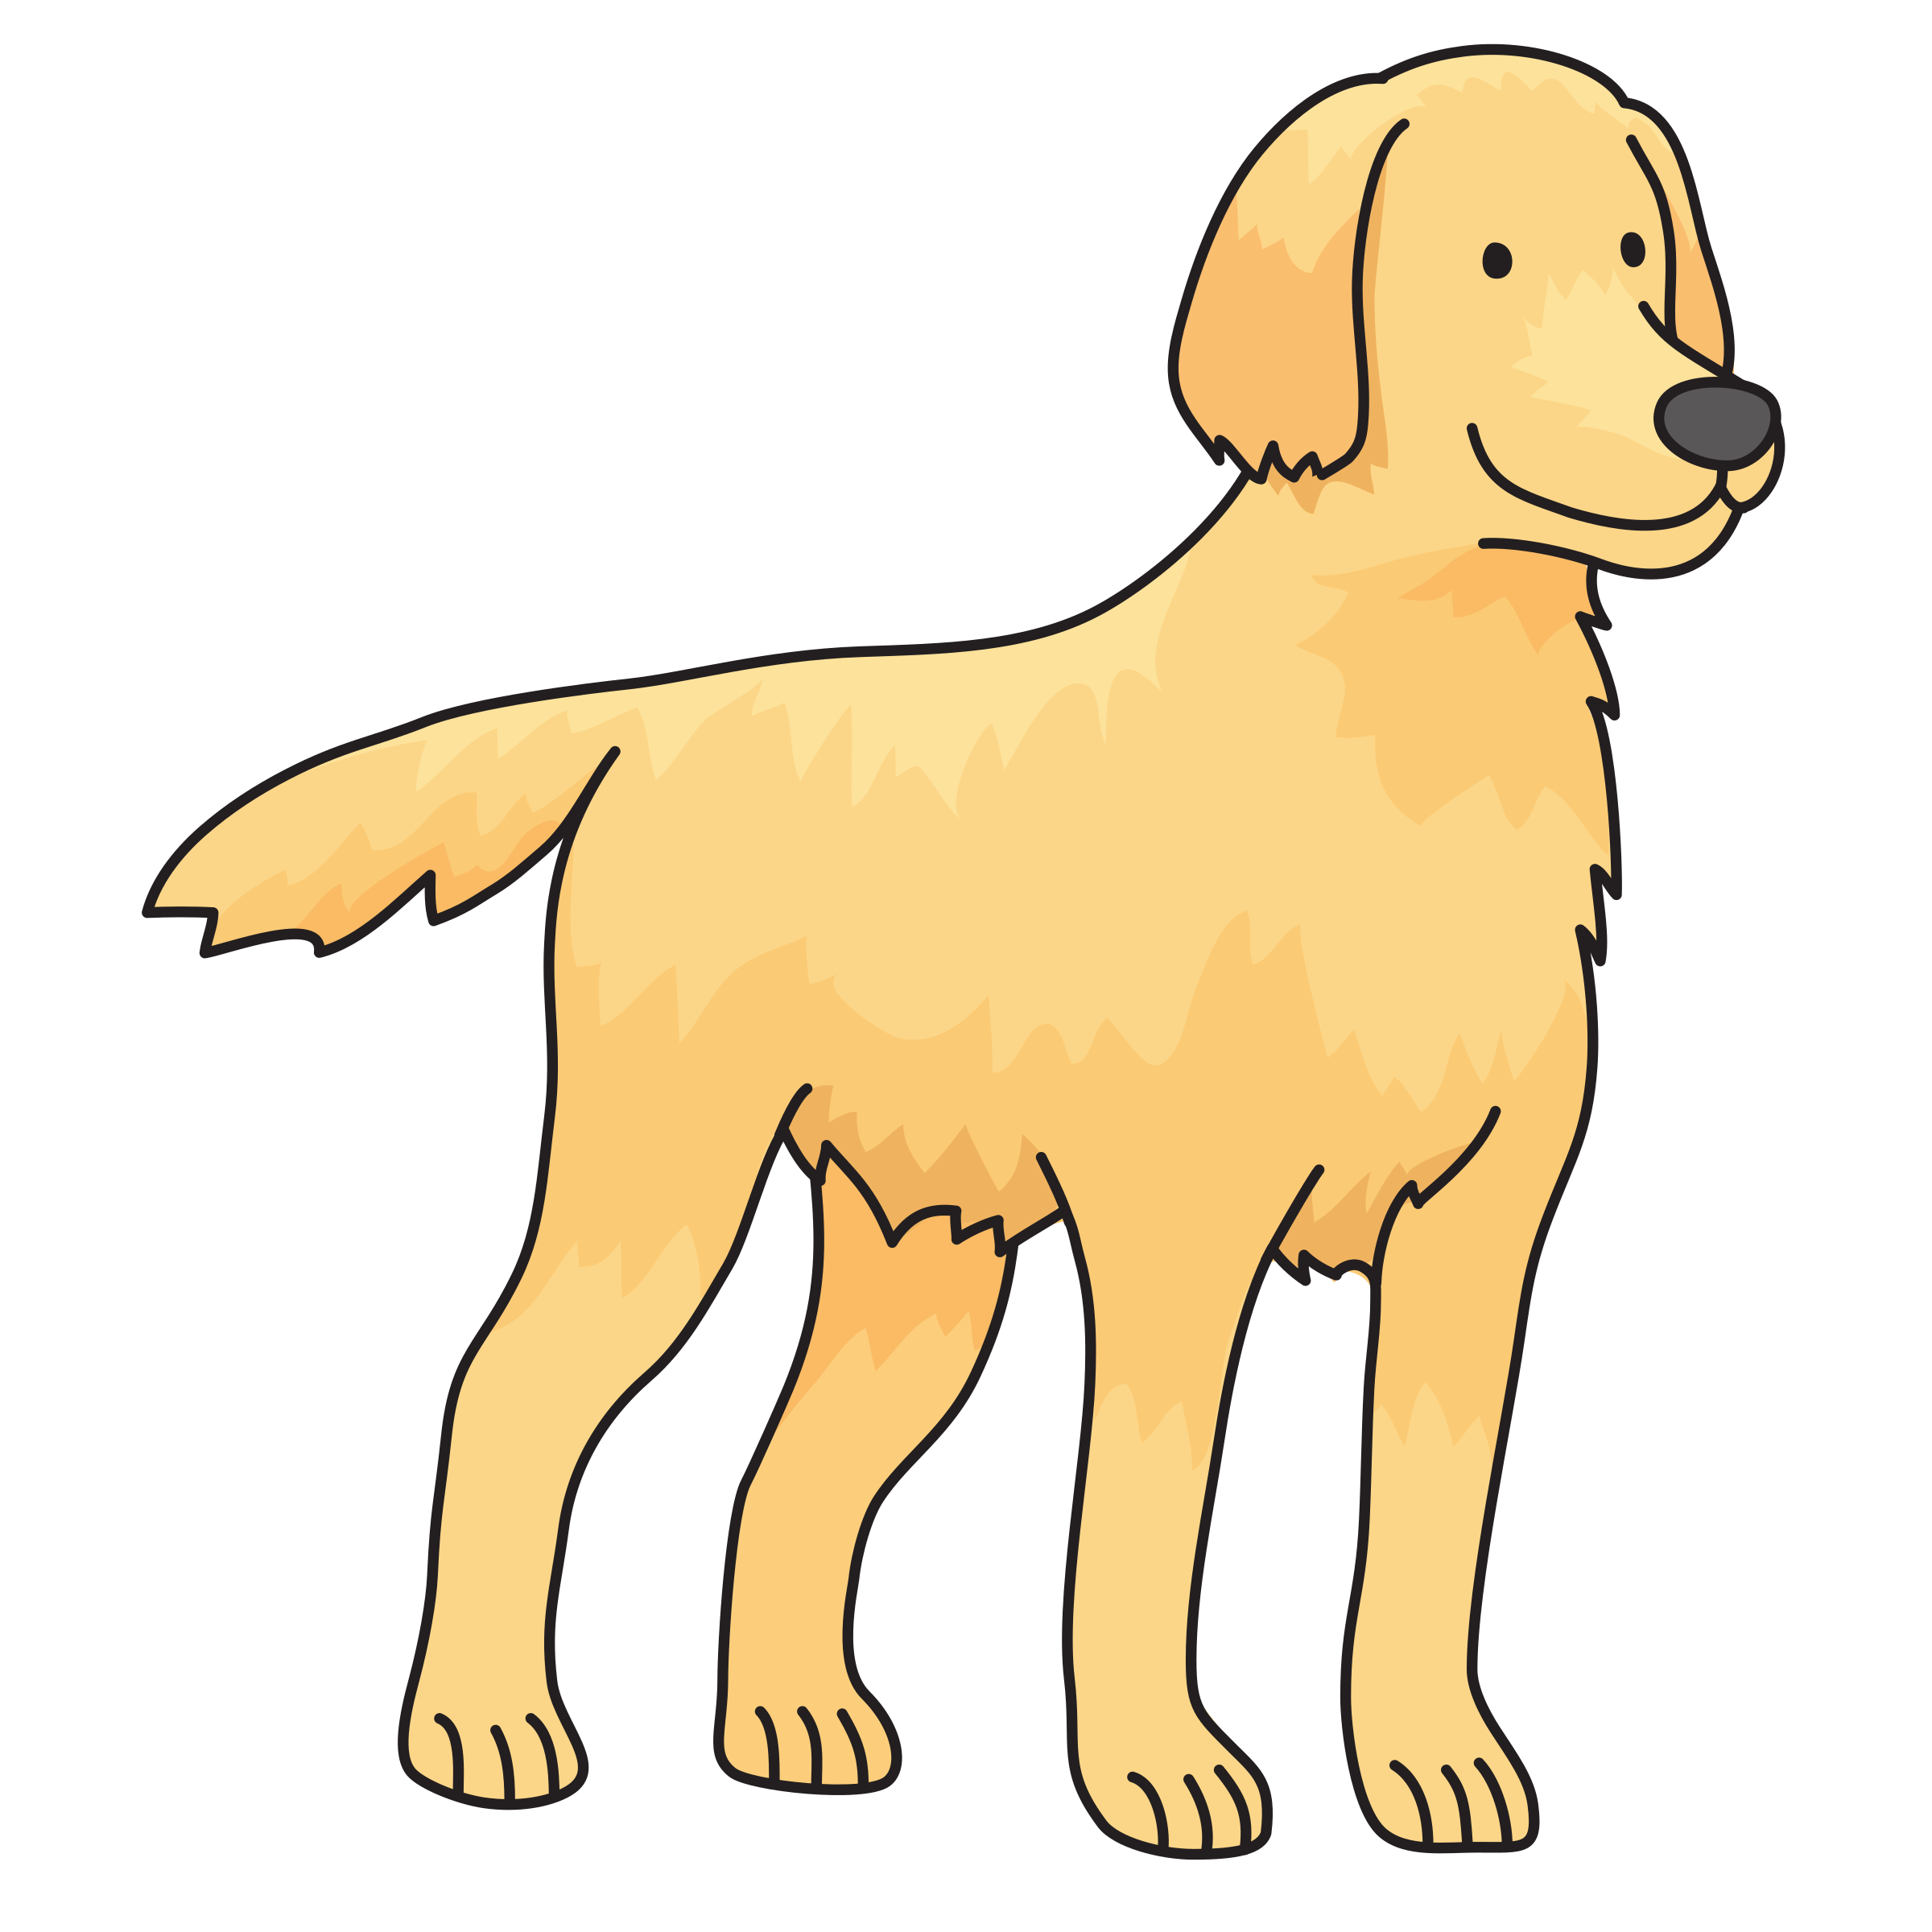 Orange dog clipart clipart black and white download Clipart - dog - Golden Retriever clipart black and white download